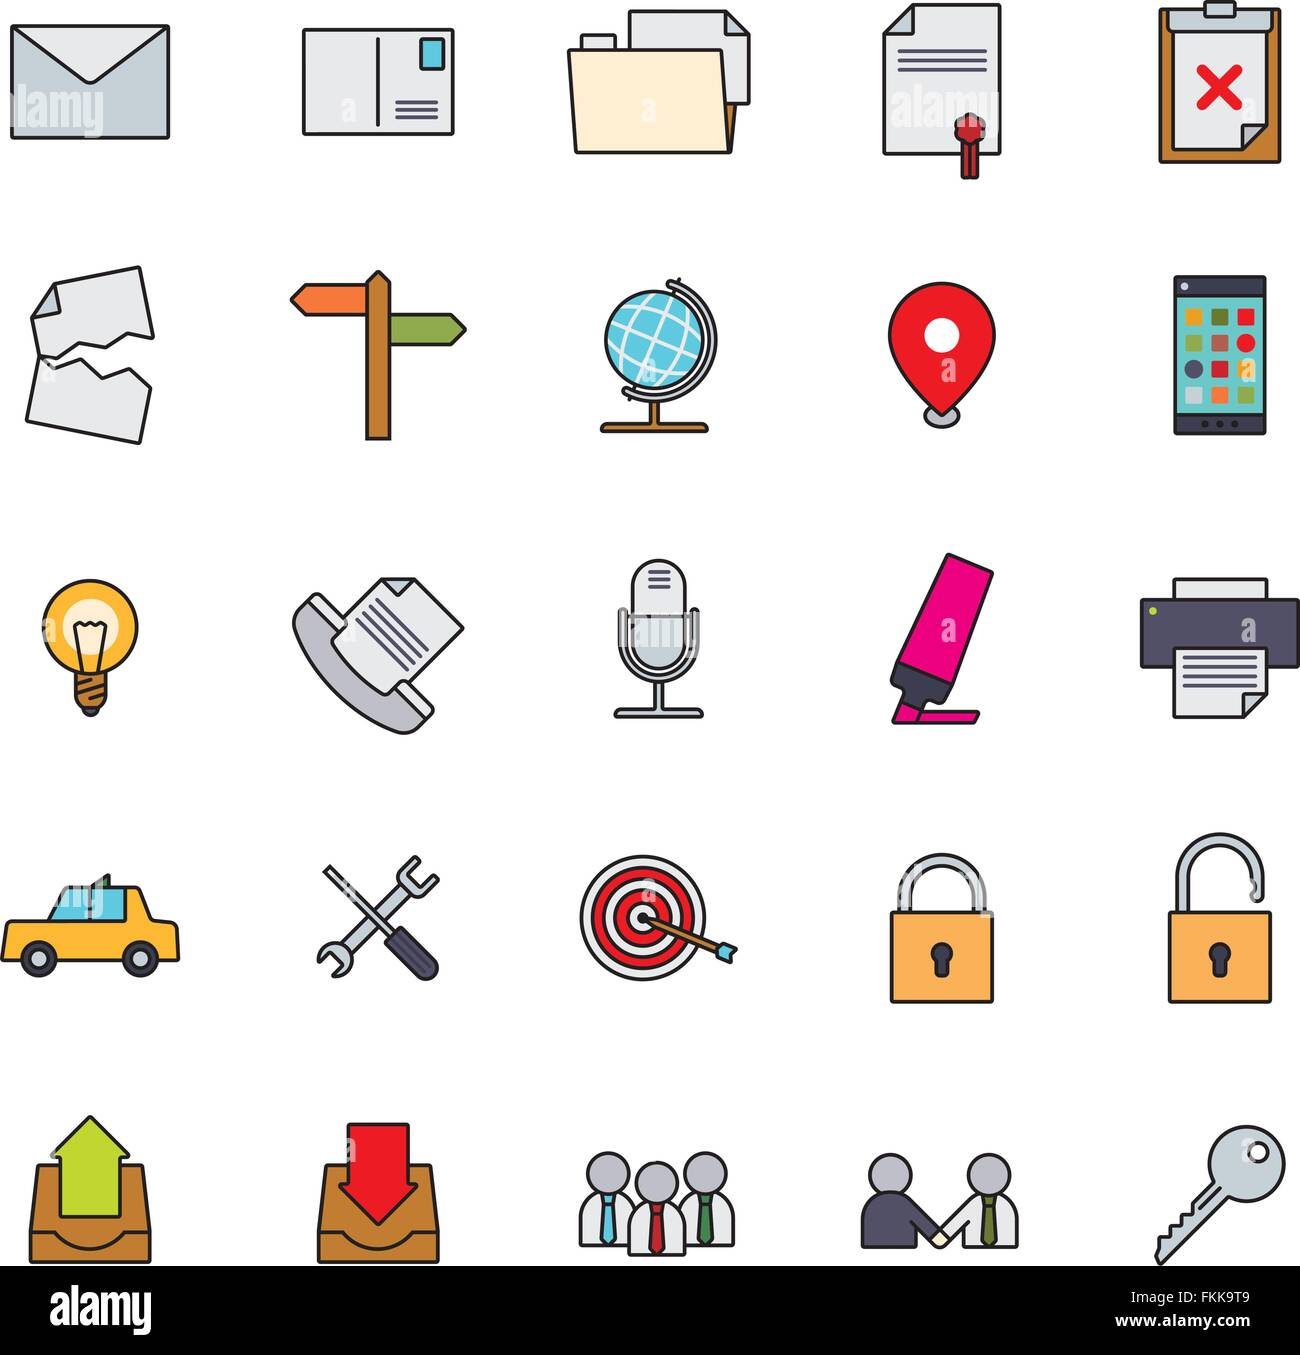 Collection of 25 business and office related filled line icons, part 2 - Stock Image